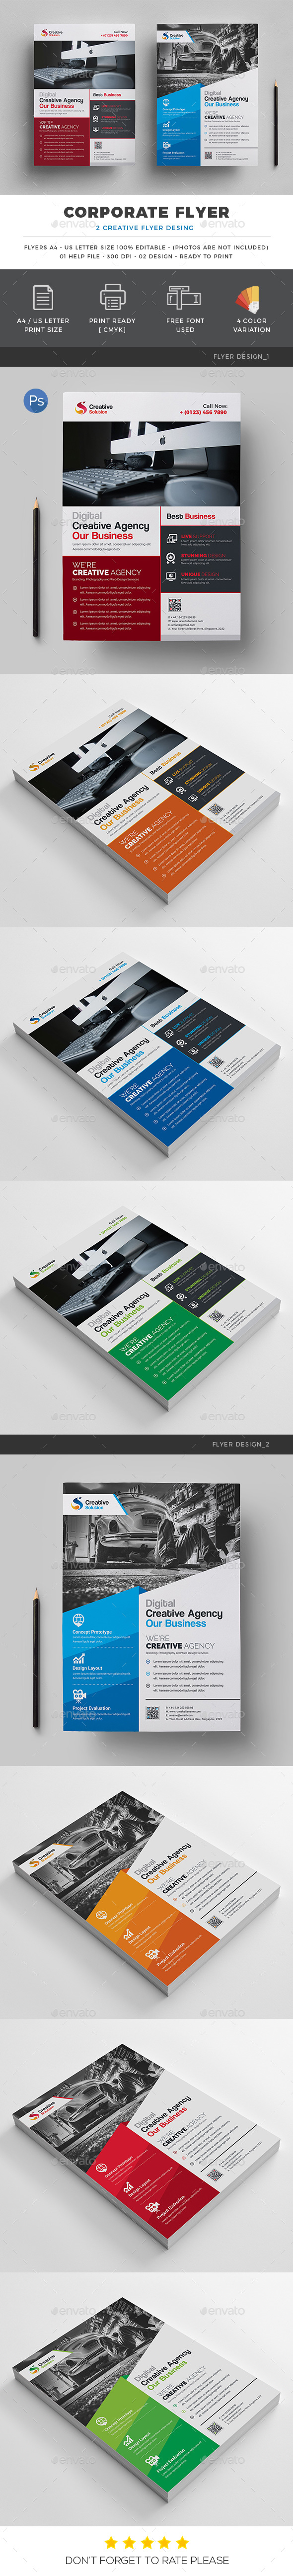 Corporate Flyer Design - Corporate Flyers